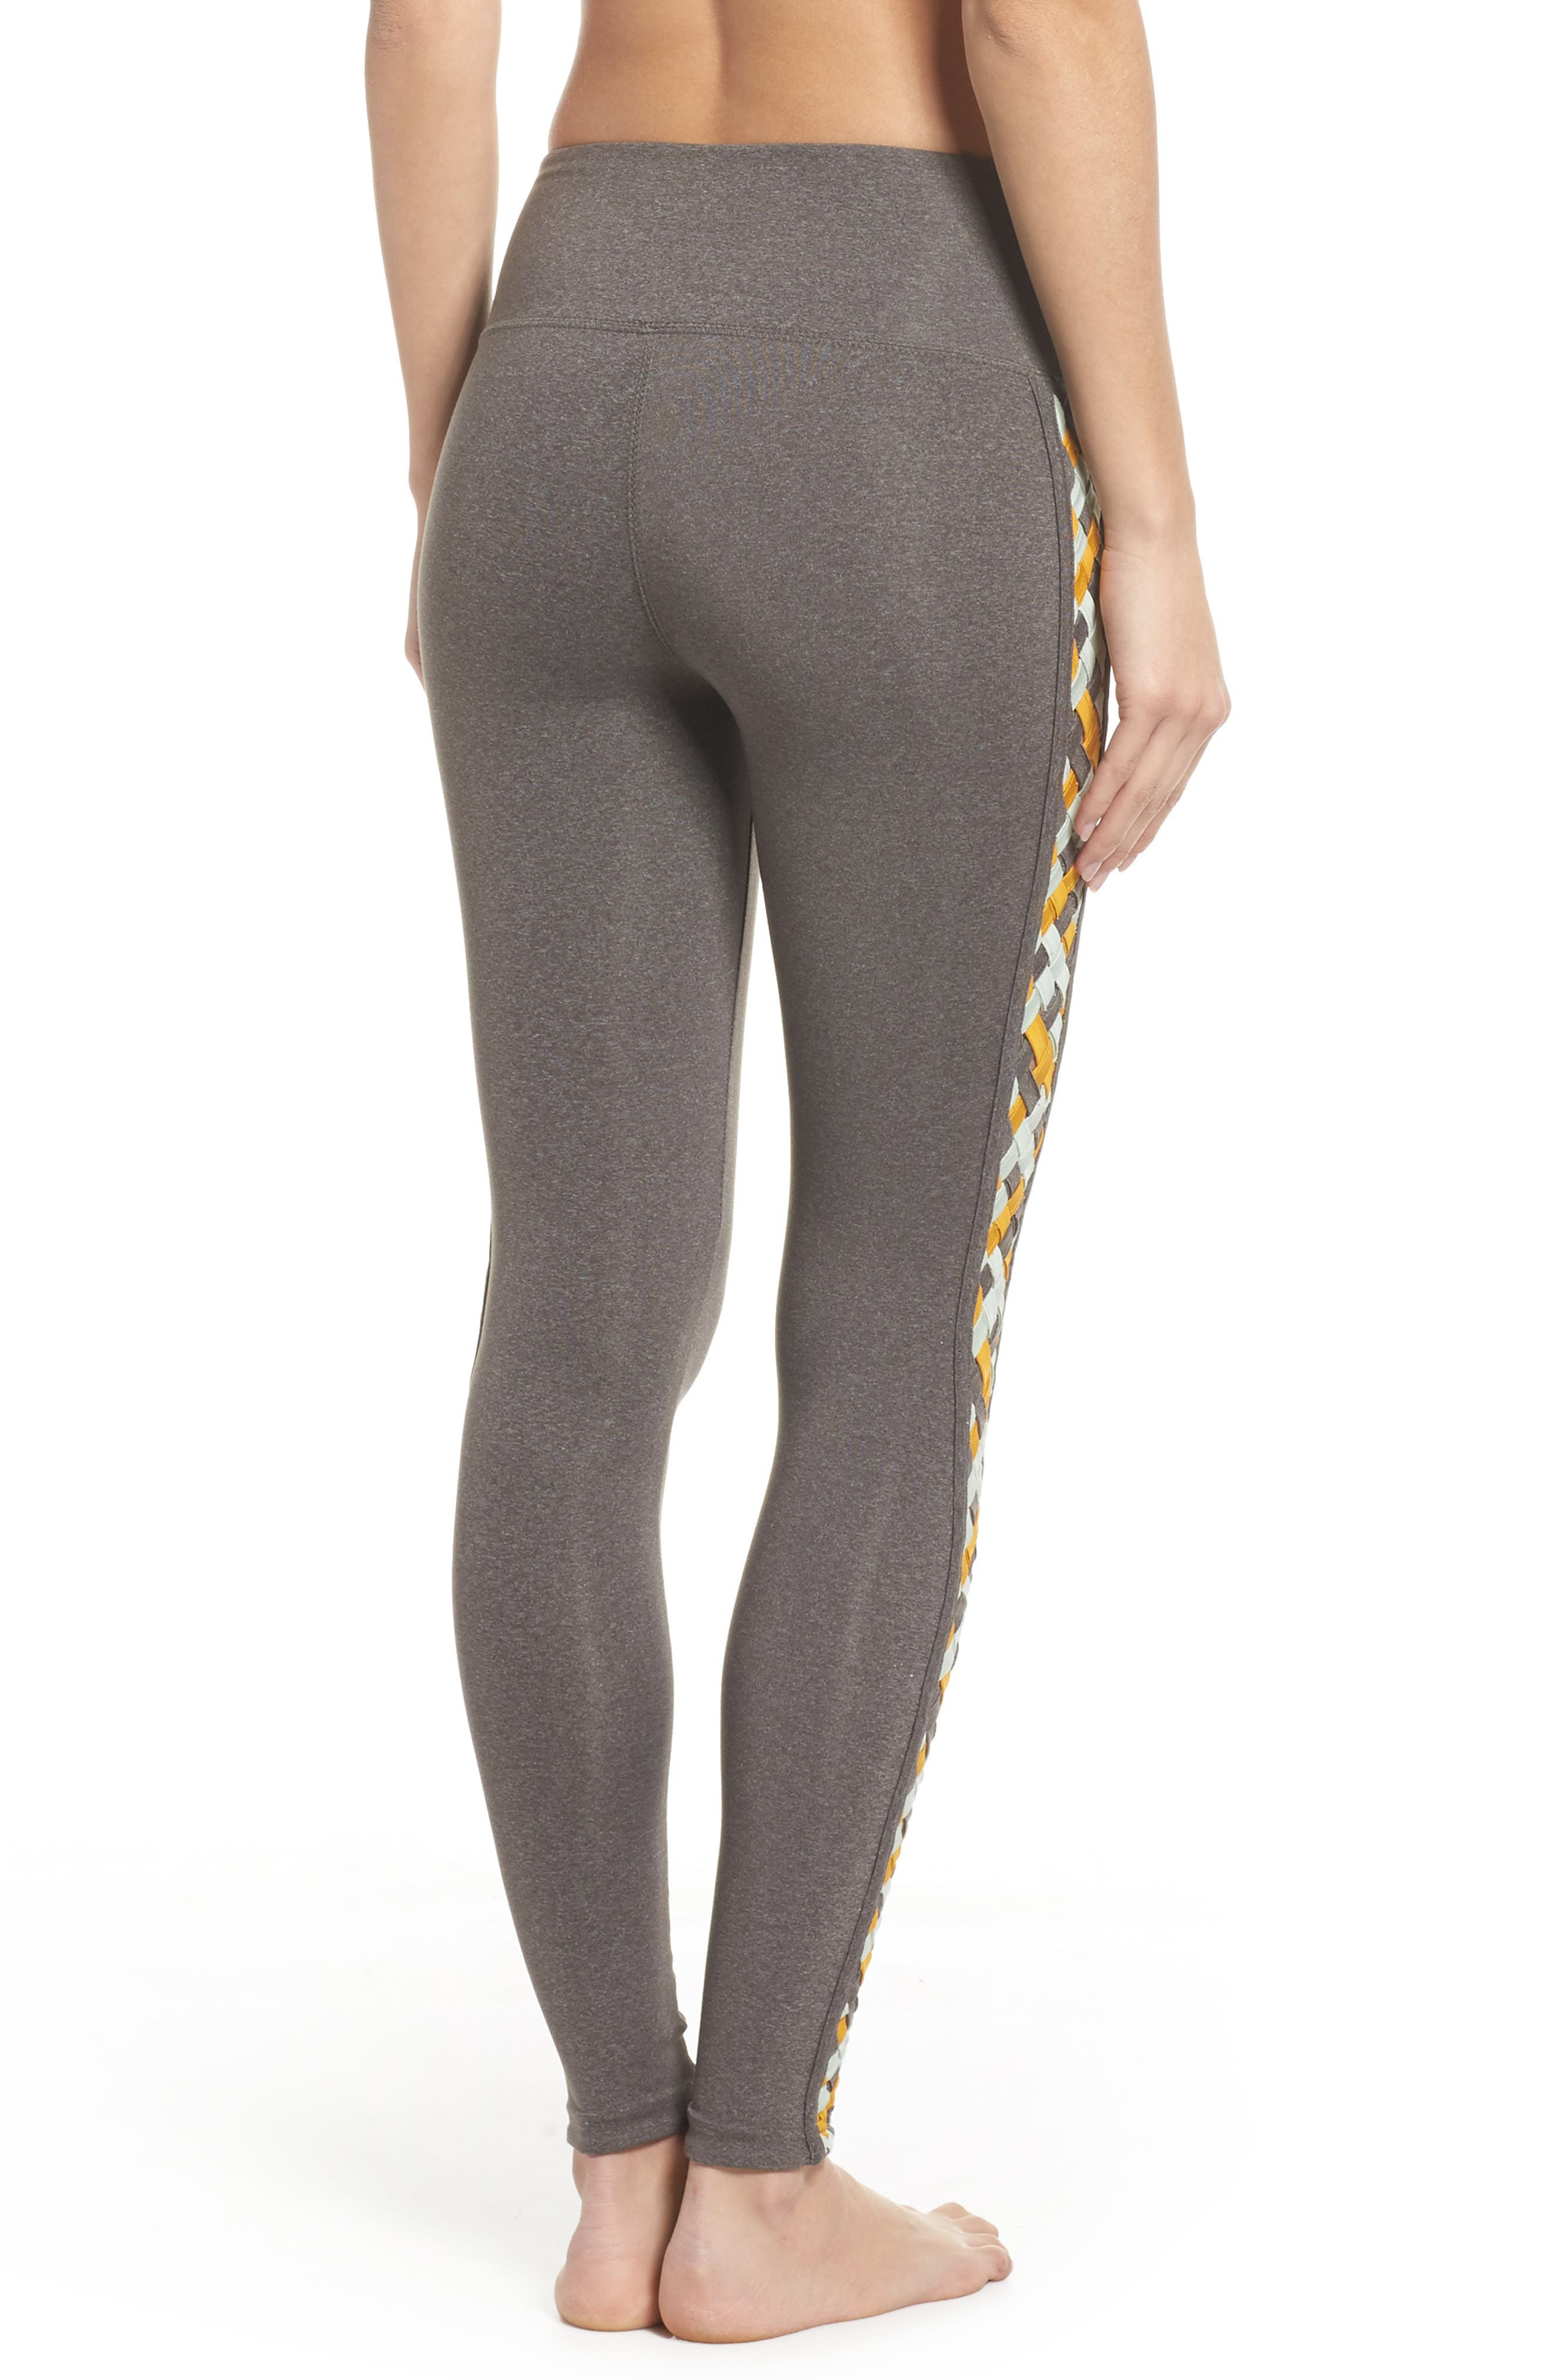 Free People Vision Leggings,                             Alternate thumbnail 2, color,                             Light Grey